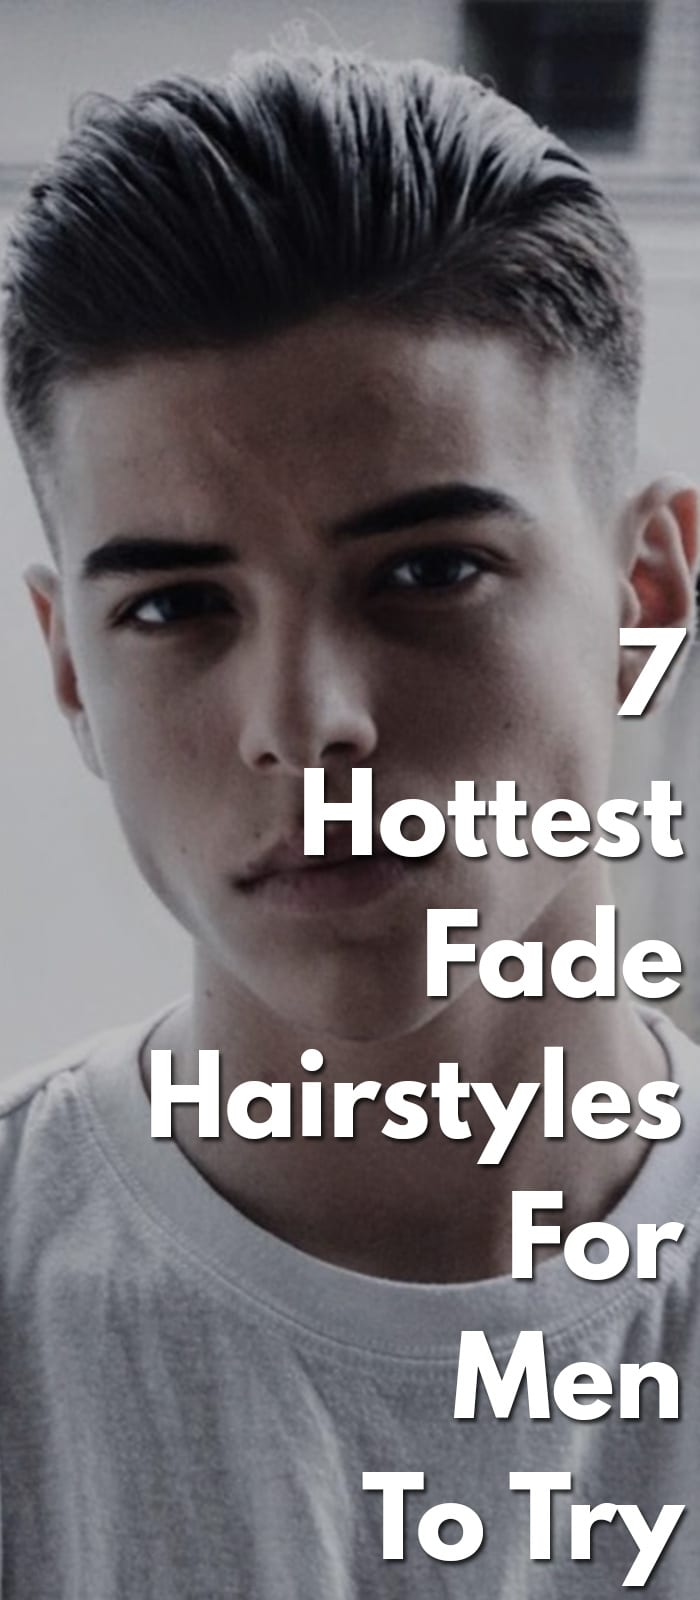 7-Hottest-Fade-Hairstyles-For-Men-To-Try.